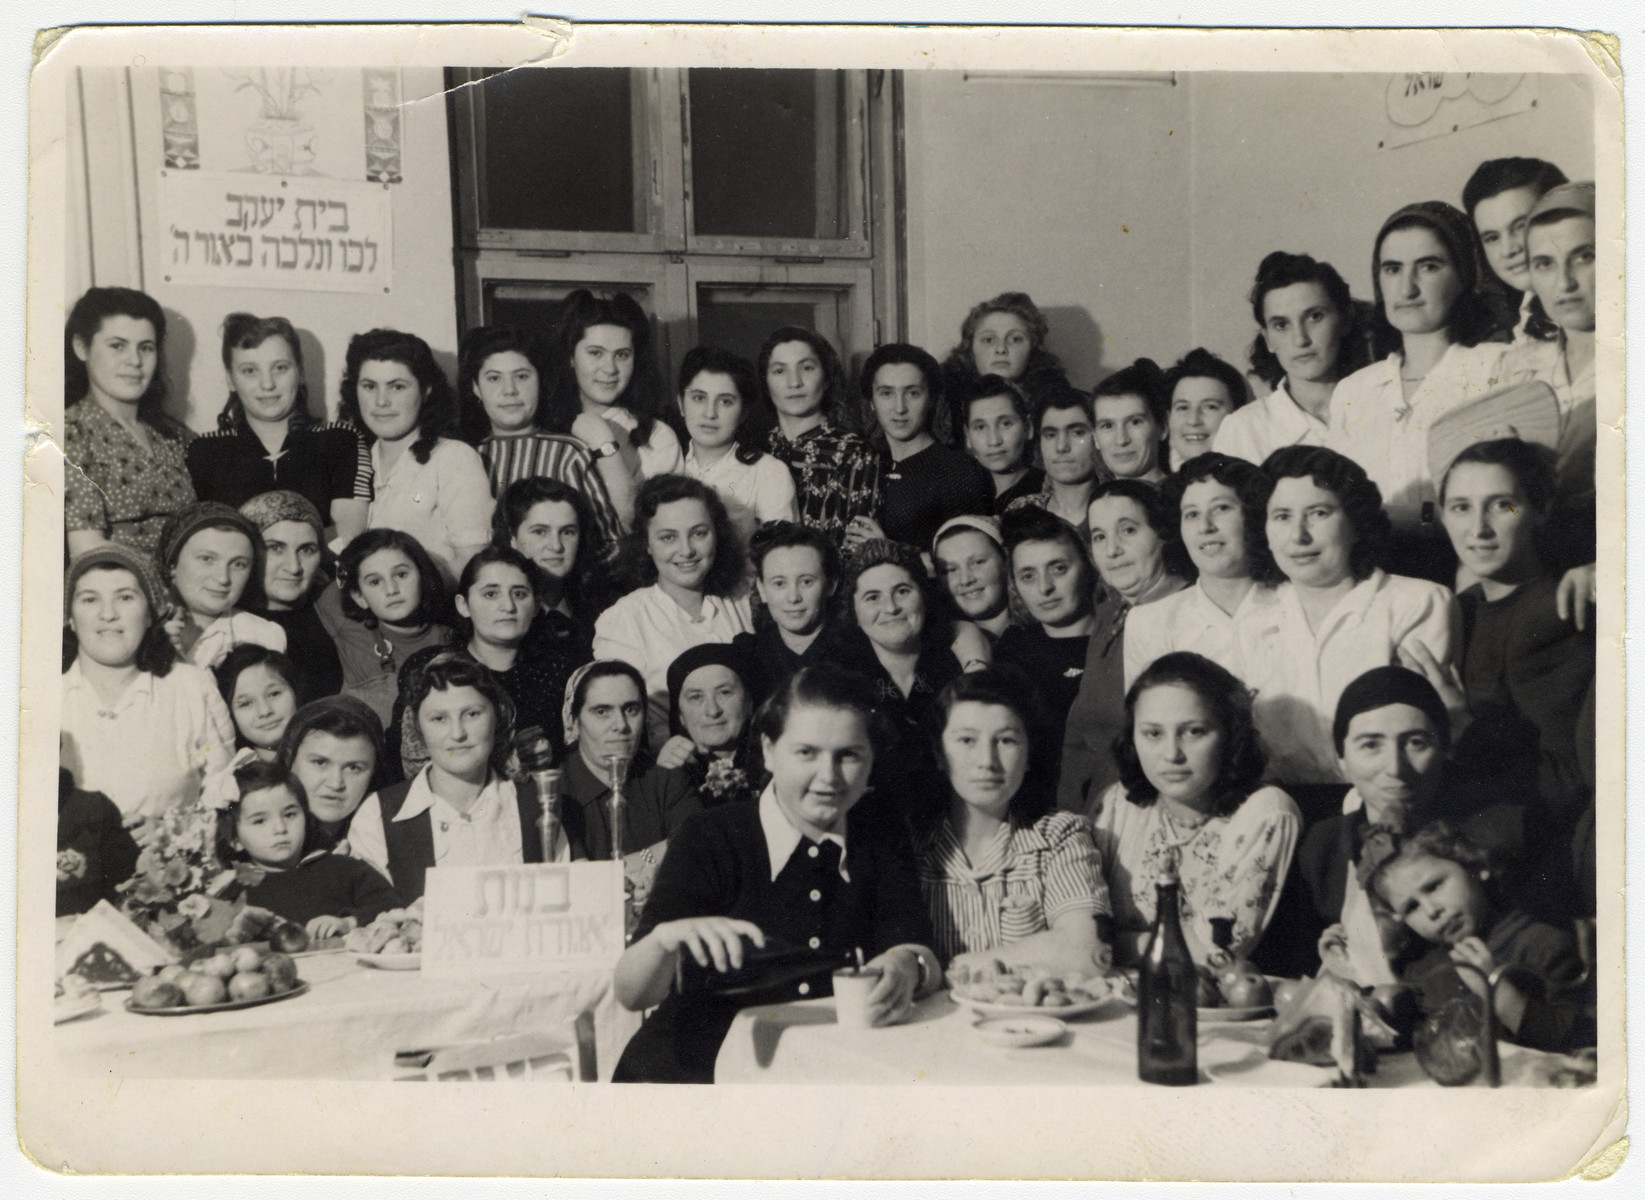 Girls from Bnot Agudat Yisrael and Beit Yaakov hold a celebration in the Bad Gastein displaced persons camp.  Pictured are Esther Ass second from the right first row.  Her sister Itka is pictured in the middle of the middle row in a light colored blouse. Also pictured is Hinde Goldberg (fifth from the right, middle row) and to her right is Yente Gelkop, and Chava Joskovitch.  Lola Schwartz nee Fried, is in the back center, with her shadow on the wall. Her sister, Magda (Matel) Gruen nee Fried,  is in the second row left, right under the woman in the printed dress.